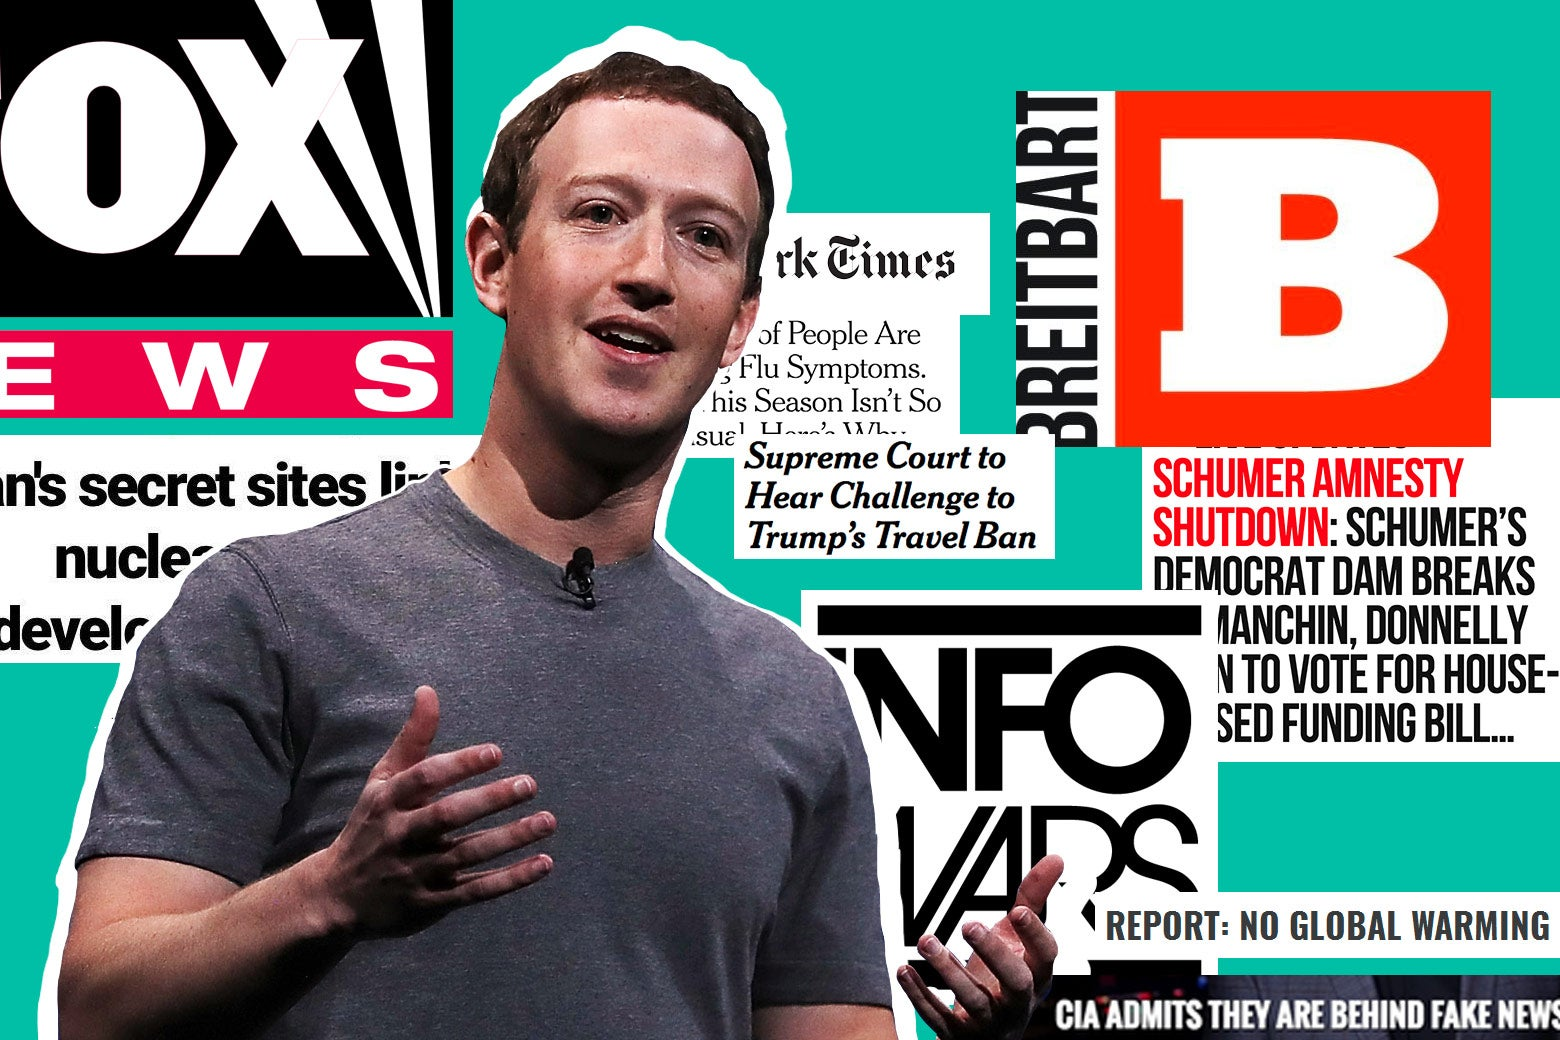 Mark Zuckerberg shown amid headlines from the New York Times, Breitbart, Fox News, and so on.